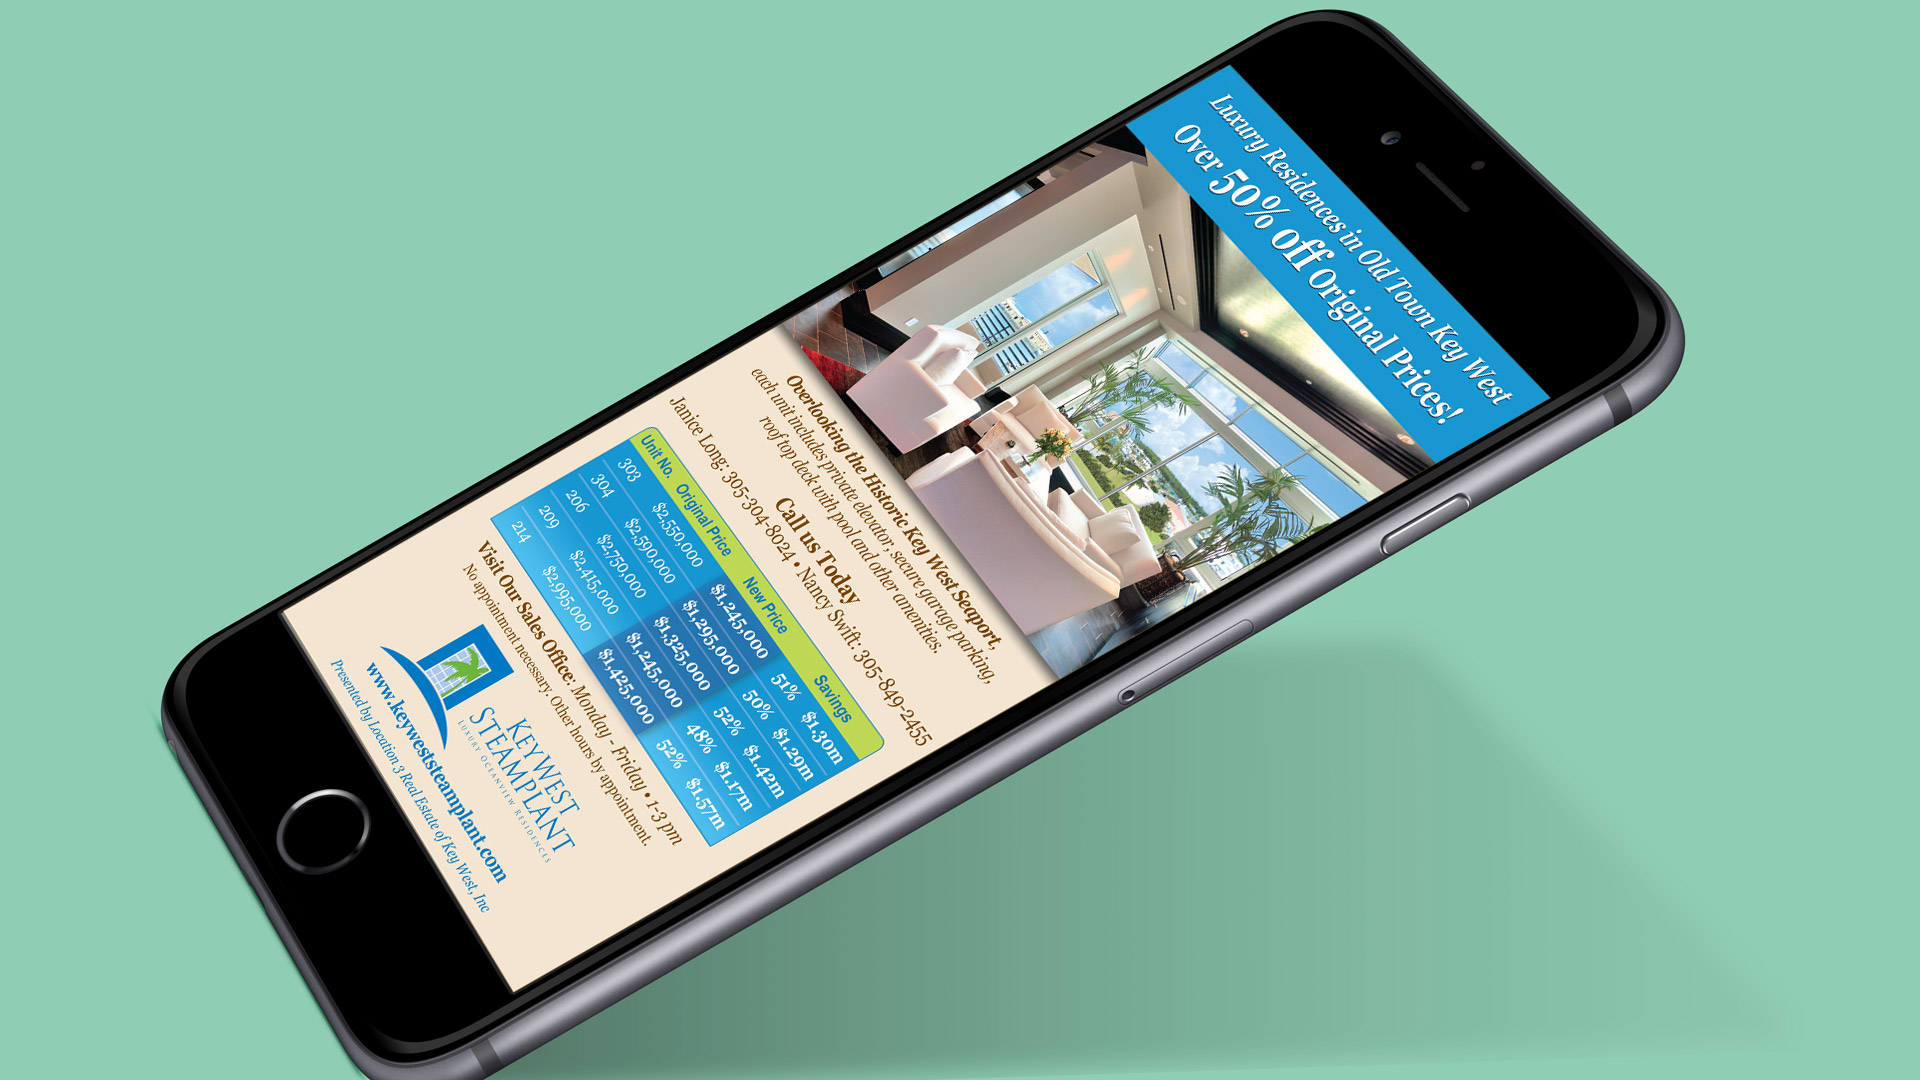 Mobile phone showing the words 'luxury residents in Old Town Key West over 50% off original prices' at the top, living room picture underneath, chart with prices, and key west steam plant logo and website address at bottom.